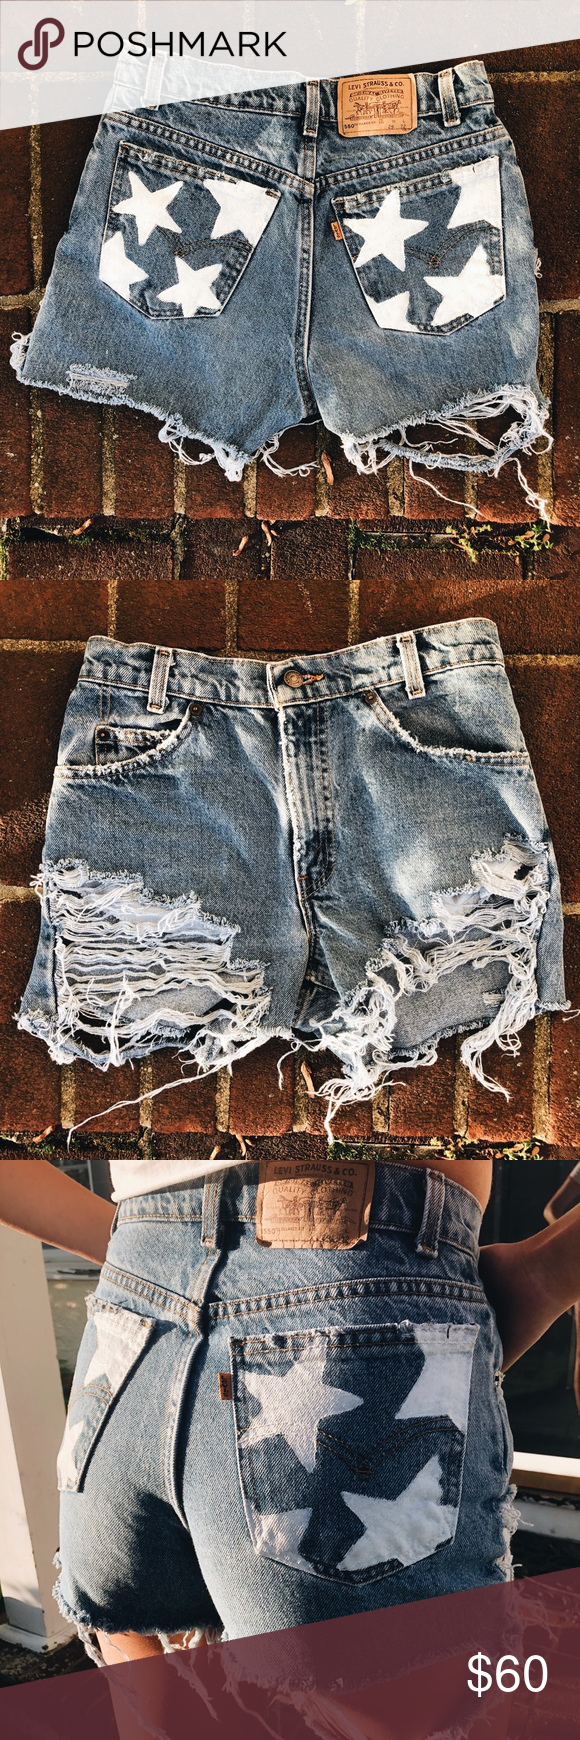 Hand painted white star pocket Levi shorts Denim shorts made and ripped from Levi jeans. I ripped and painted them myself. White stars on back pockets. Very distressed. Men's sizing says W 29 L 32. Girl in pic wearing shorts wears sizes 0/2 in shorts. Perfect for Fourth of July, USA or American flag parties! Levi's Shorts Jean Shorts